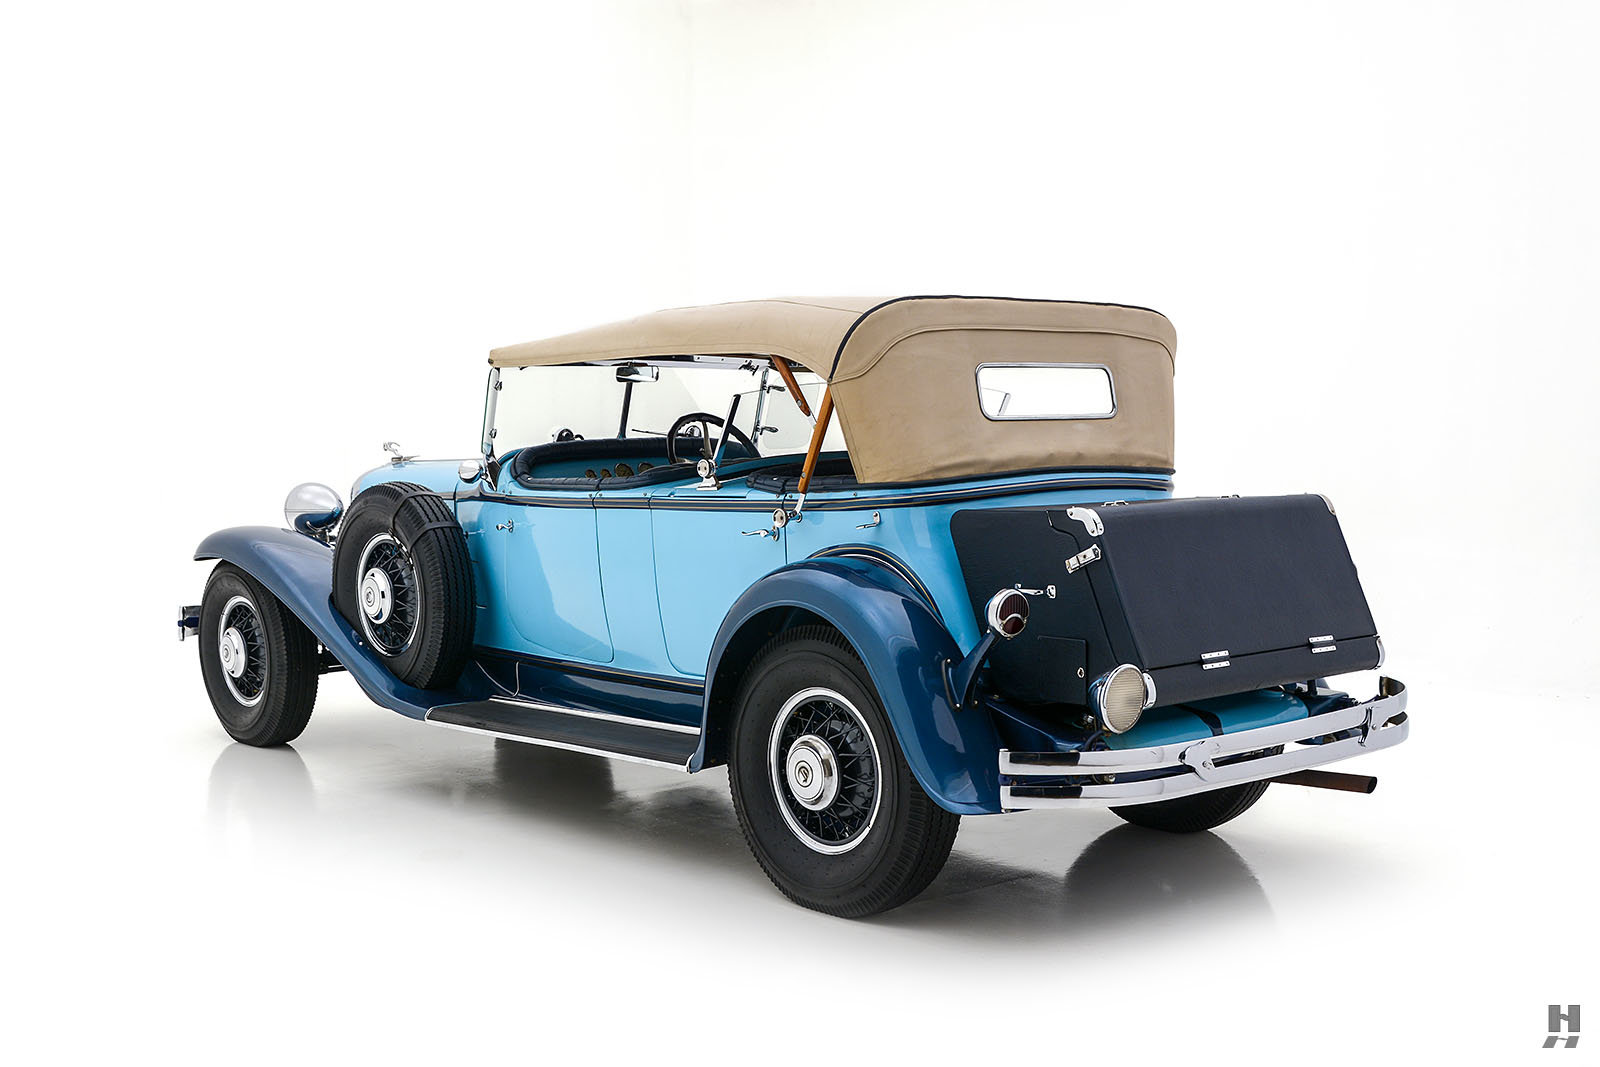 1931 CHRYSLER CG IMPERIAL DUAL COWL PHAETON For Sale (picture 6 of 6)